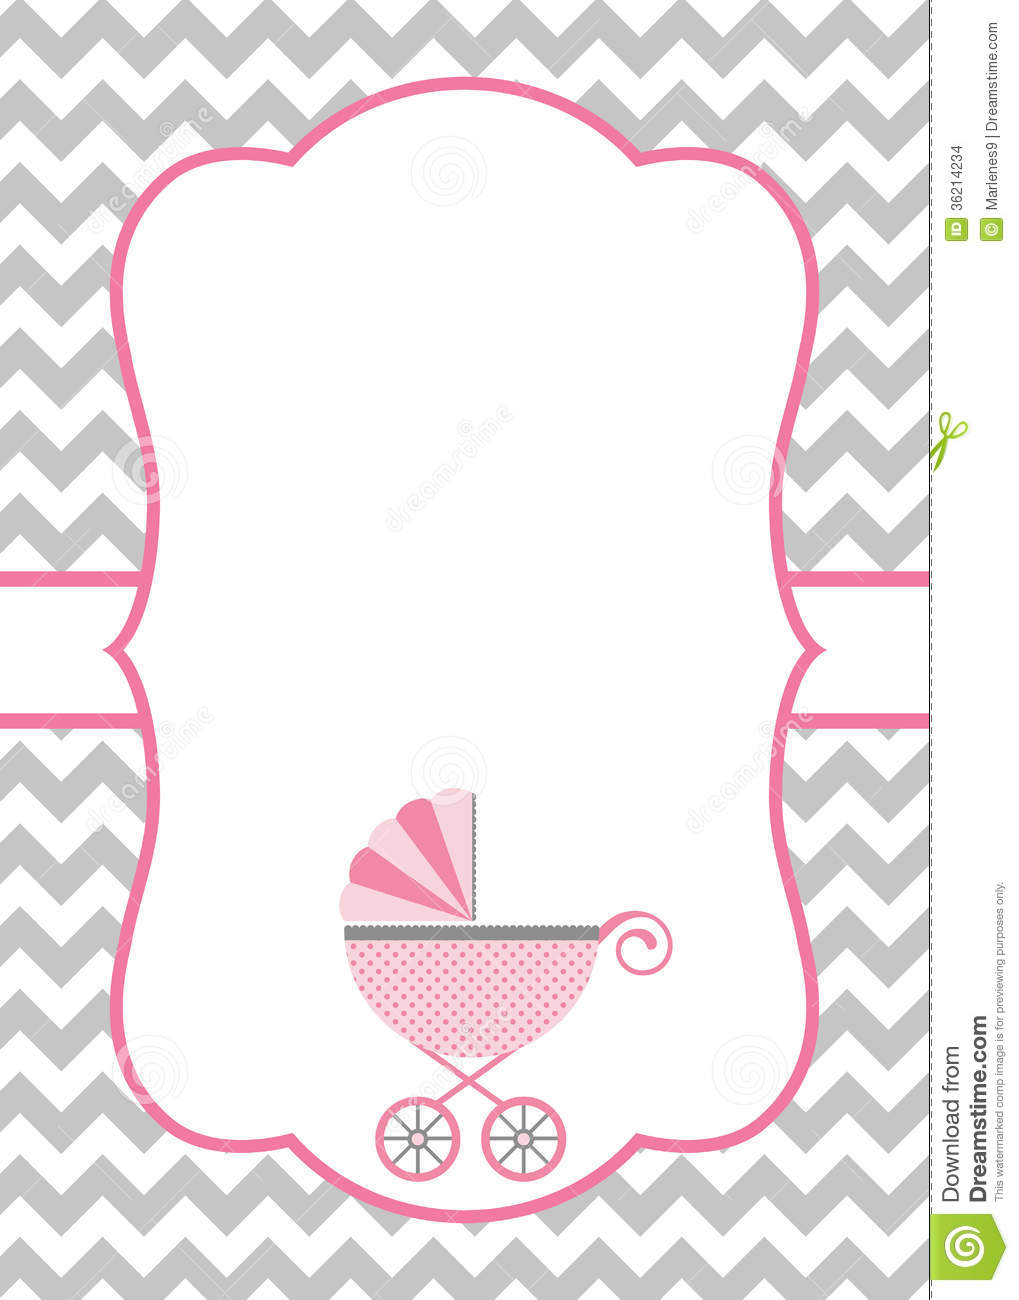 baby shower card template - nicetobeatyou.tk